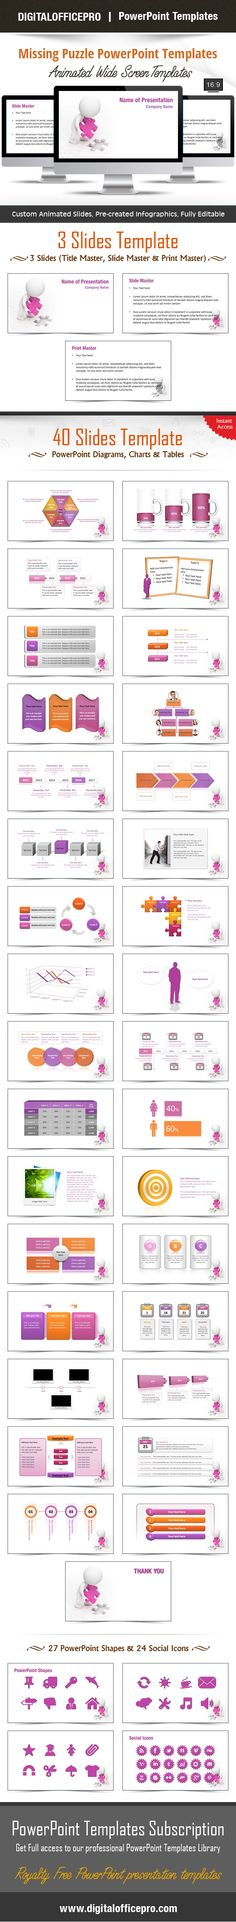 Impress and Engage your audience with Missing Puzzle PowerPoint Template and Missing Puzzle PowerPoint Backgrounds from DigitalOfficePro. Each template comes with a set of PowerPoint Diagrams, Charts & Shapes and are available for instant download.